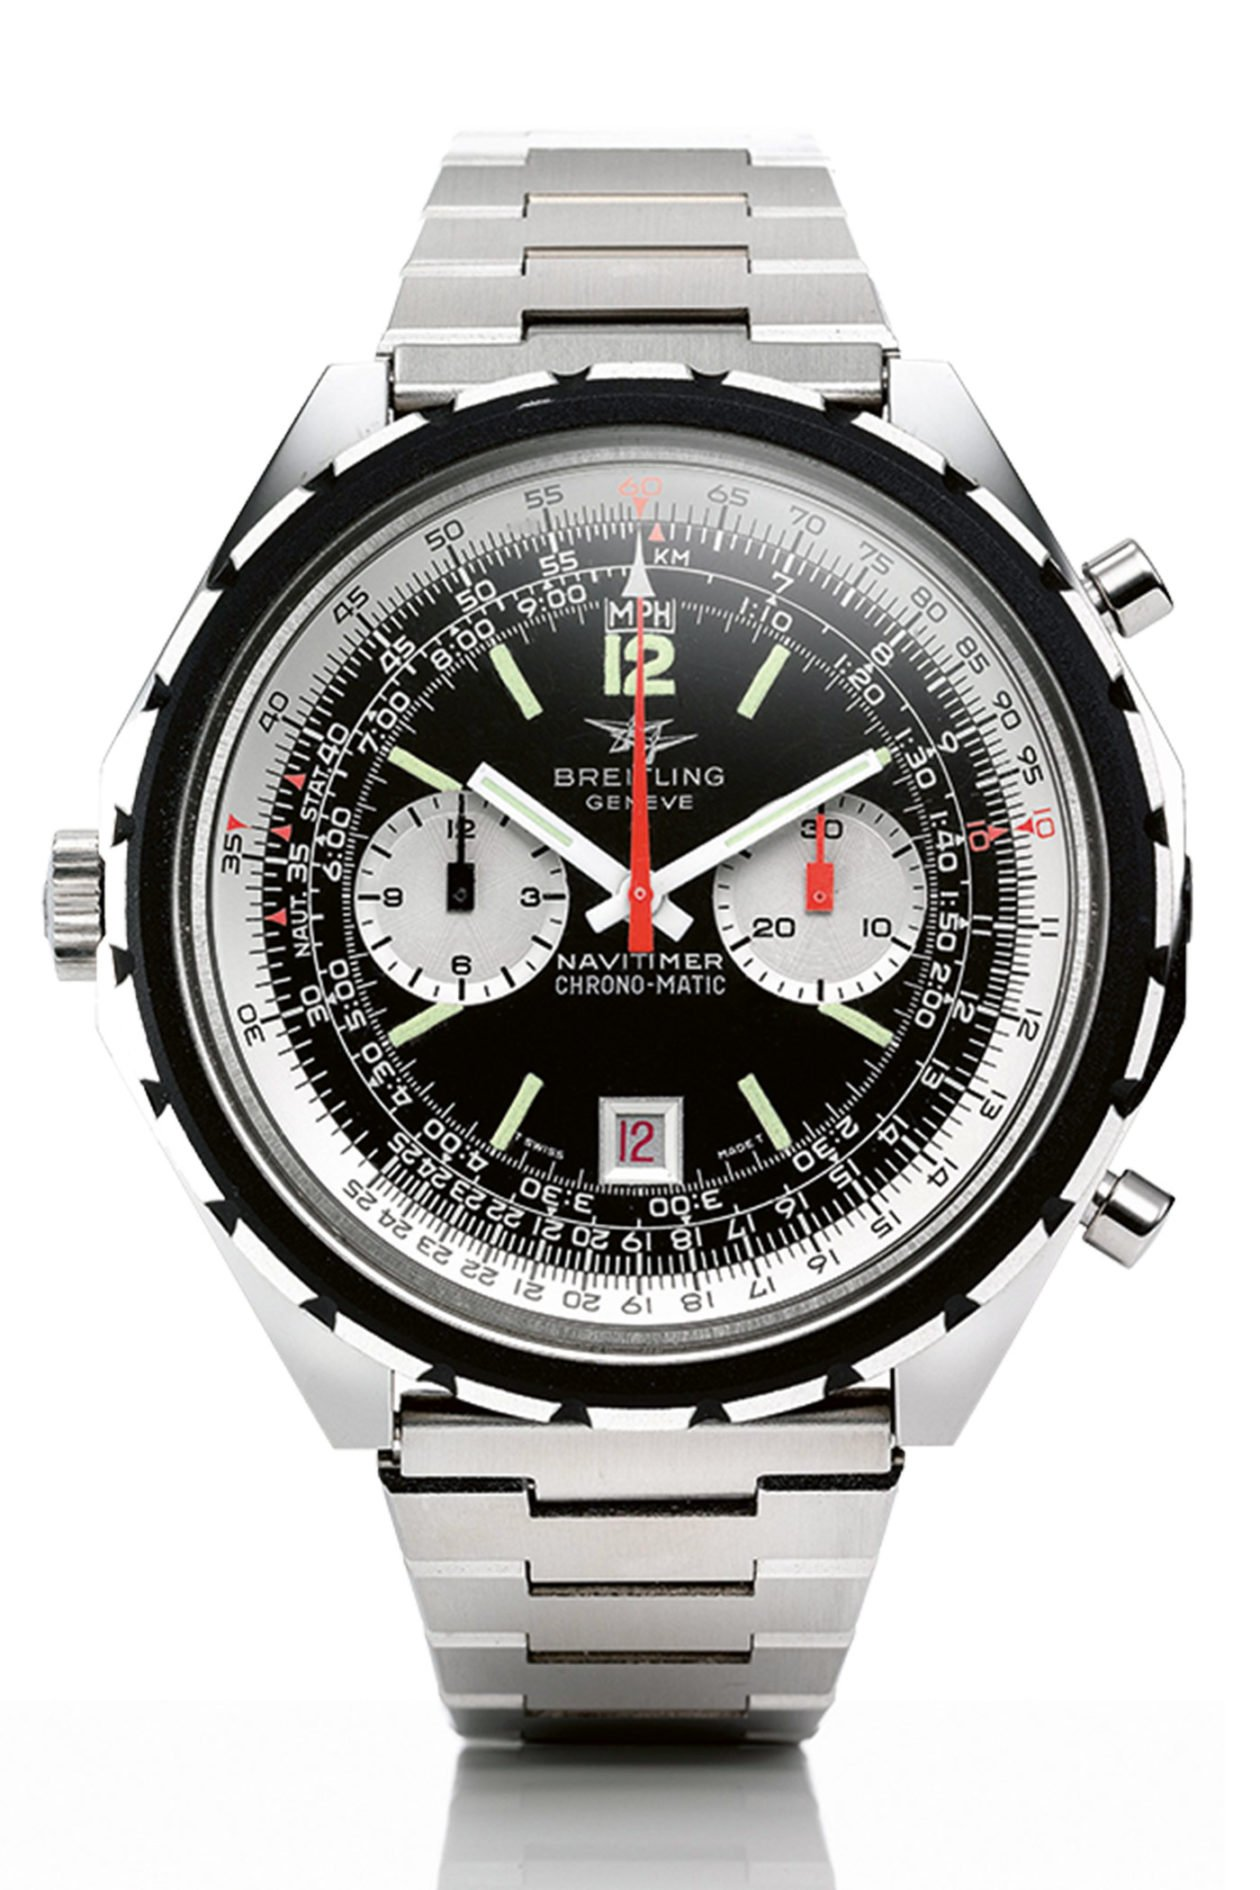 Breitling Navitimer Chrono-Matic_1969 / foto: Breitling The Book